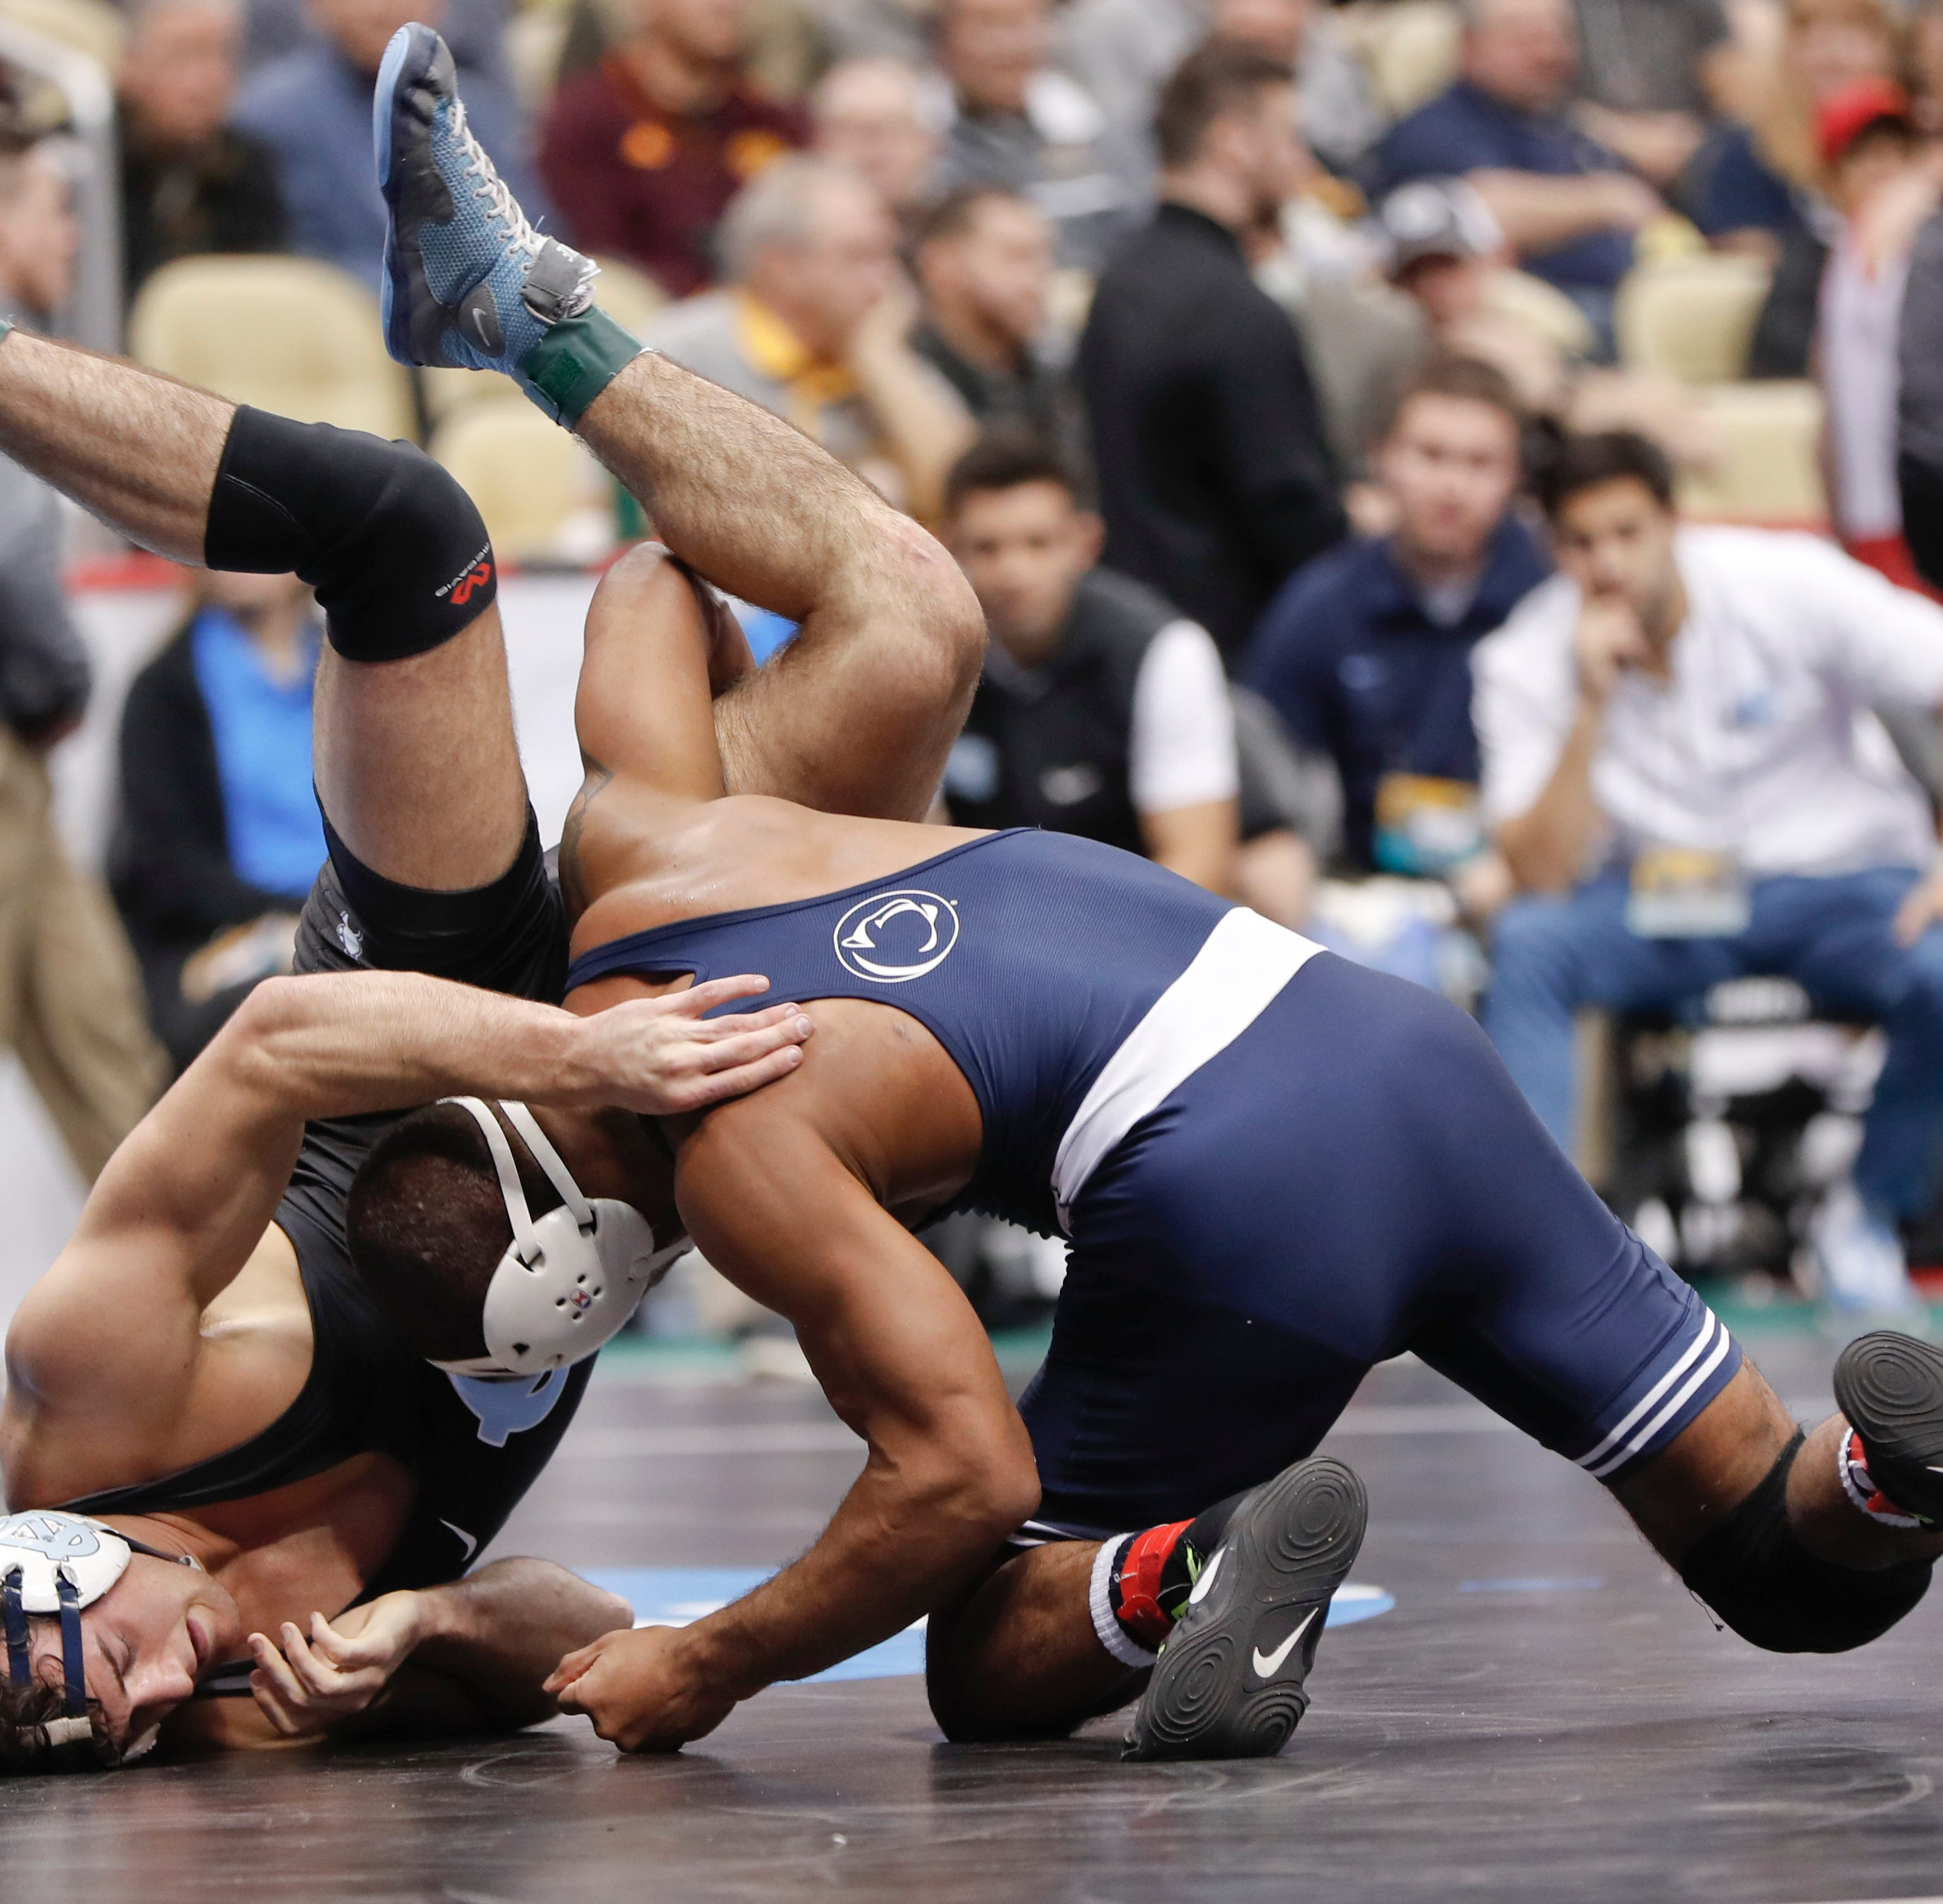 Follow live updates in the 2019 NCAA wrestling championships